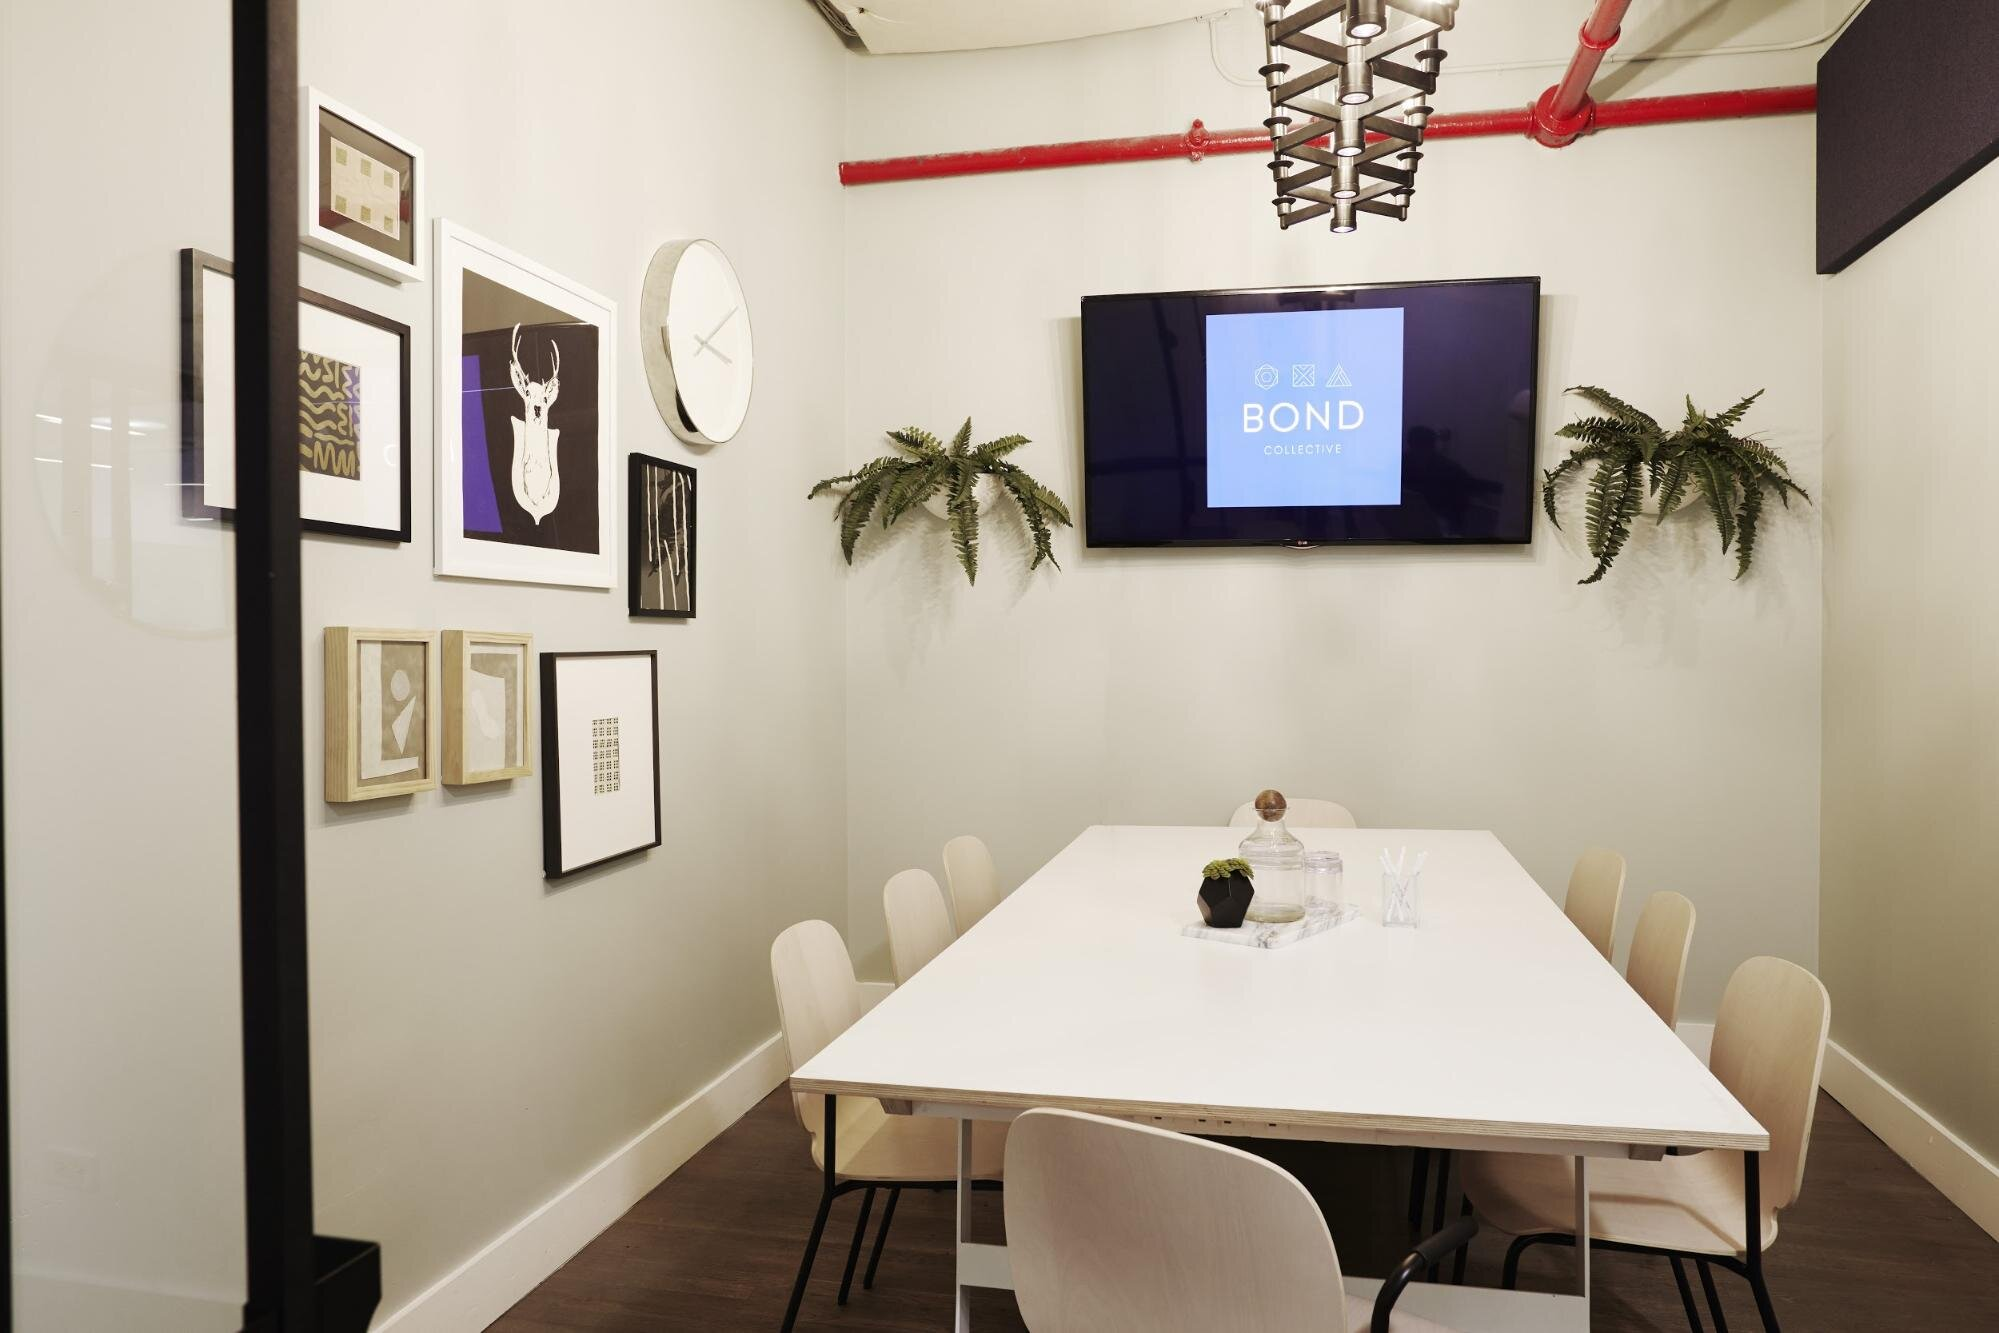 Conference room  with white table and chairs in a flexible office space